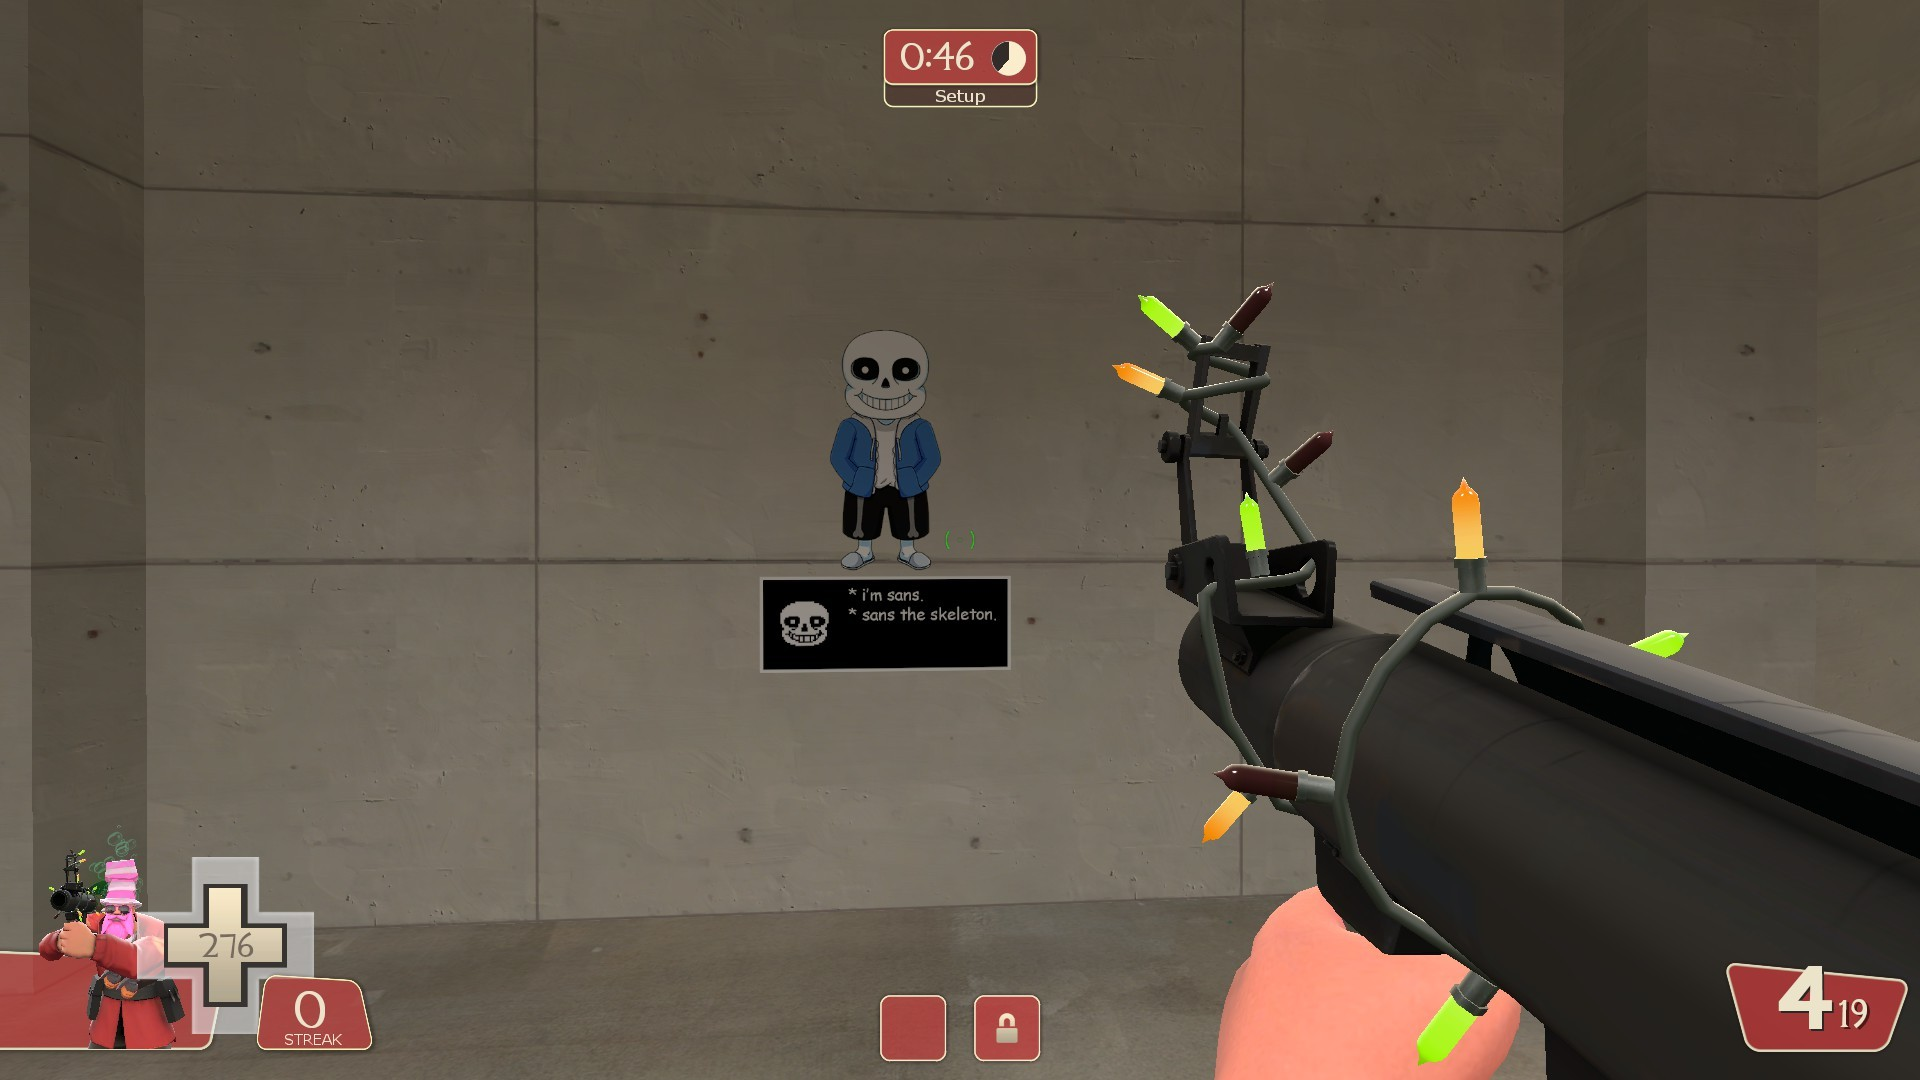 How To Make Animated Wallpaper Sans The Skeleton Spray S Team Fortress 2 Sprays